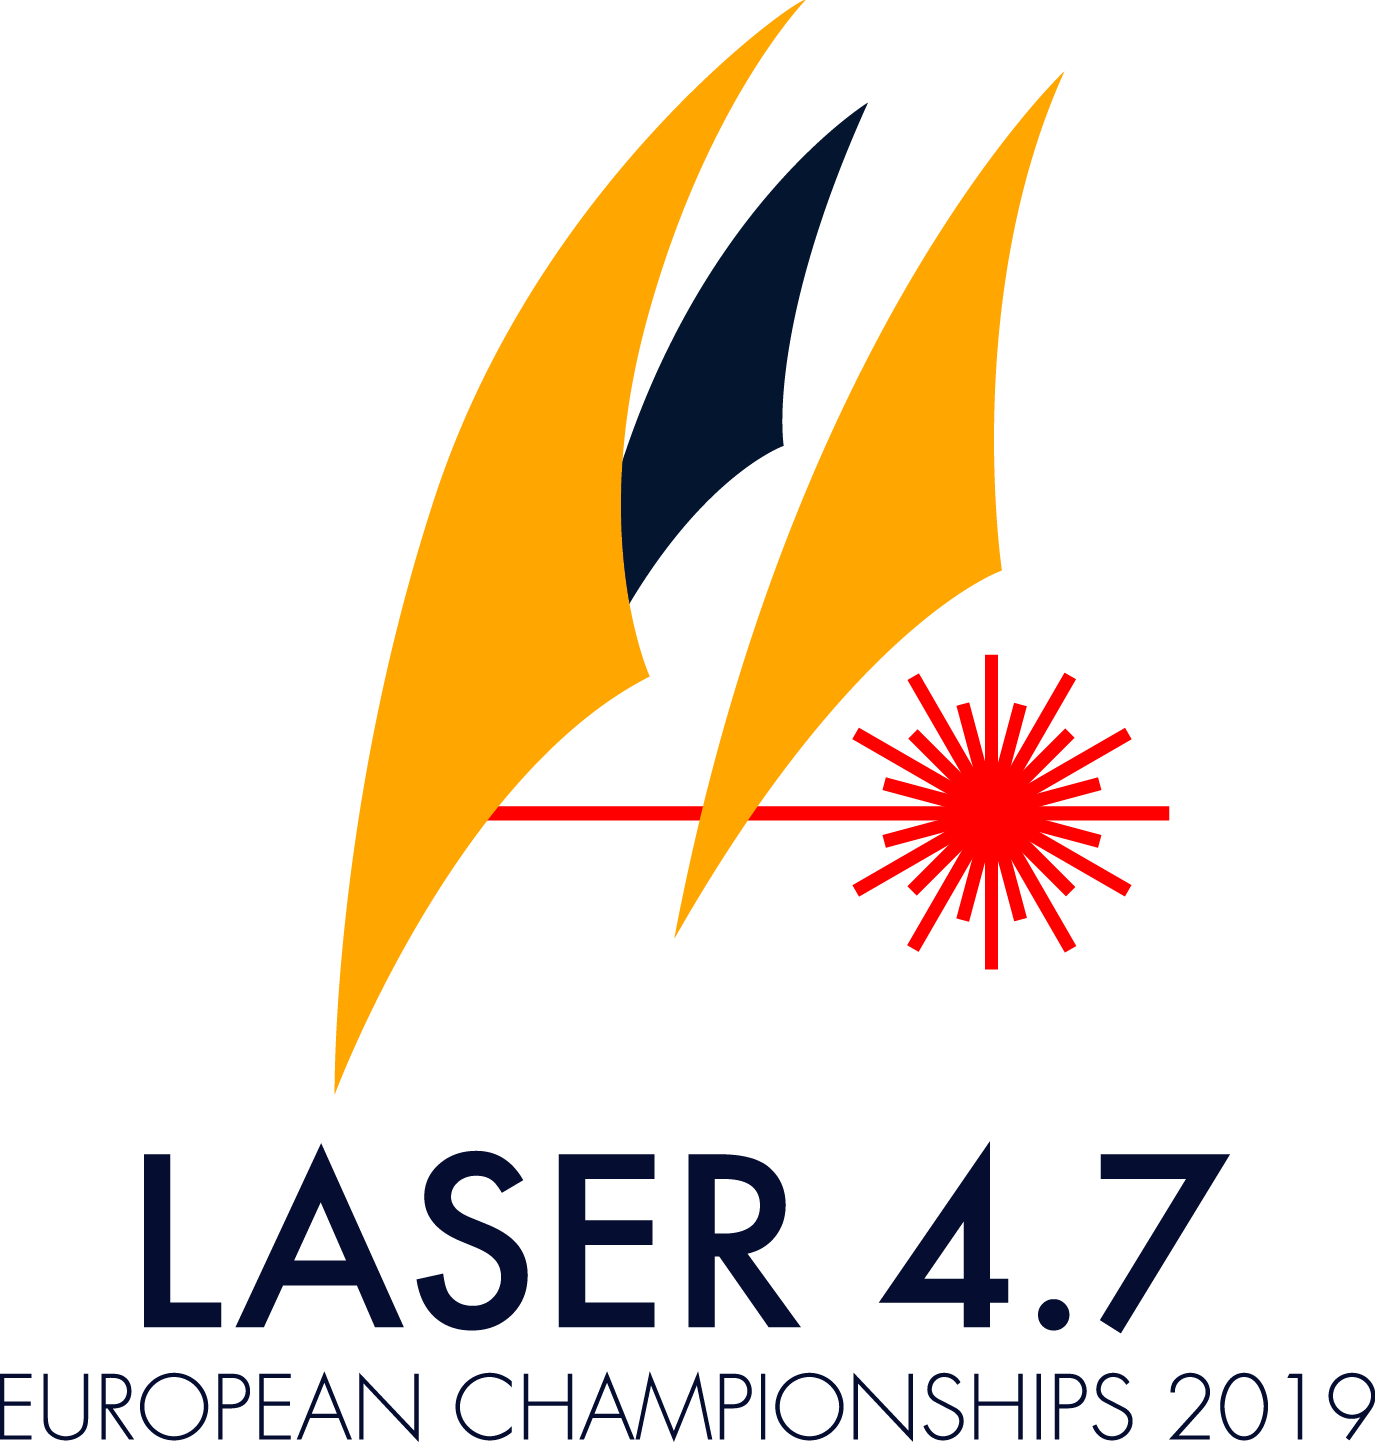 Laser 4.7 Youth European Championship & Open European Trophy 2019